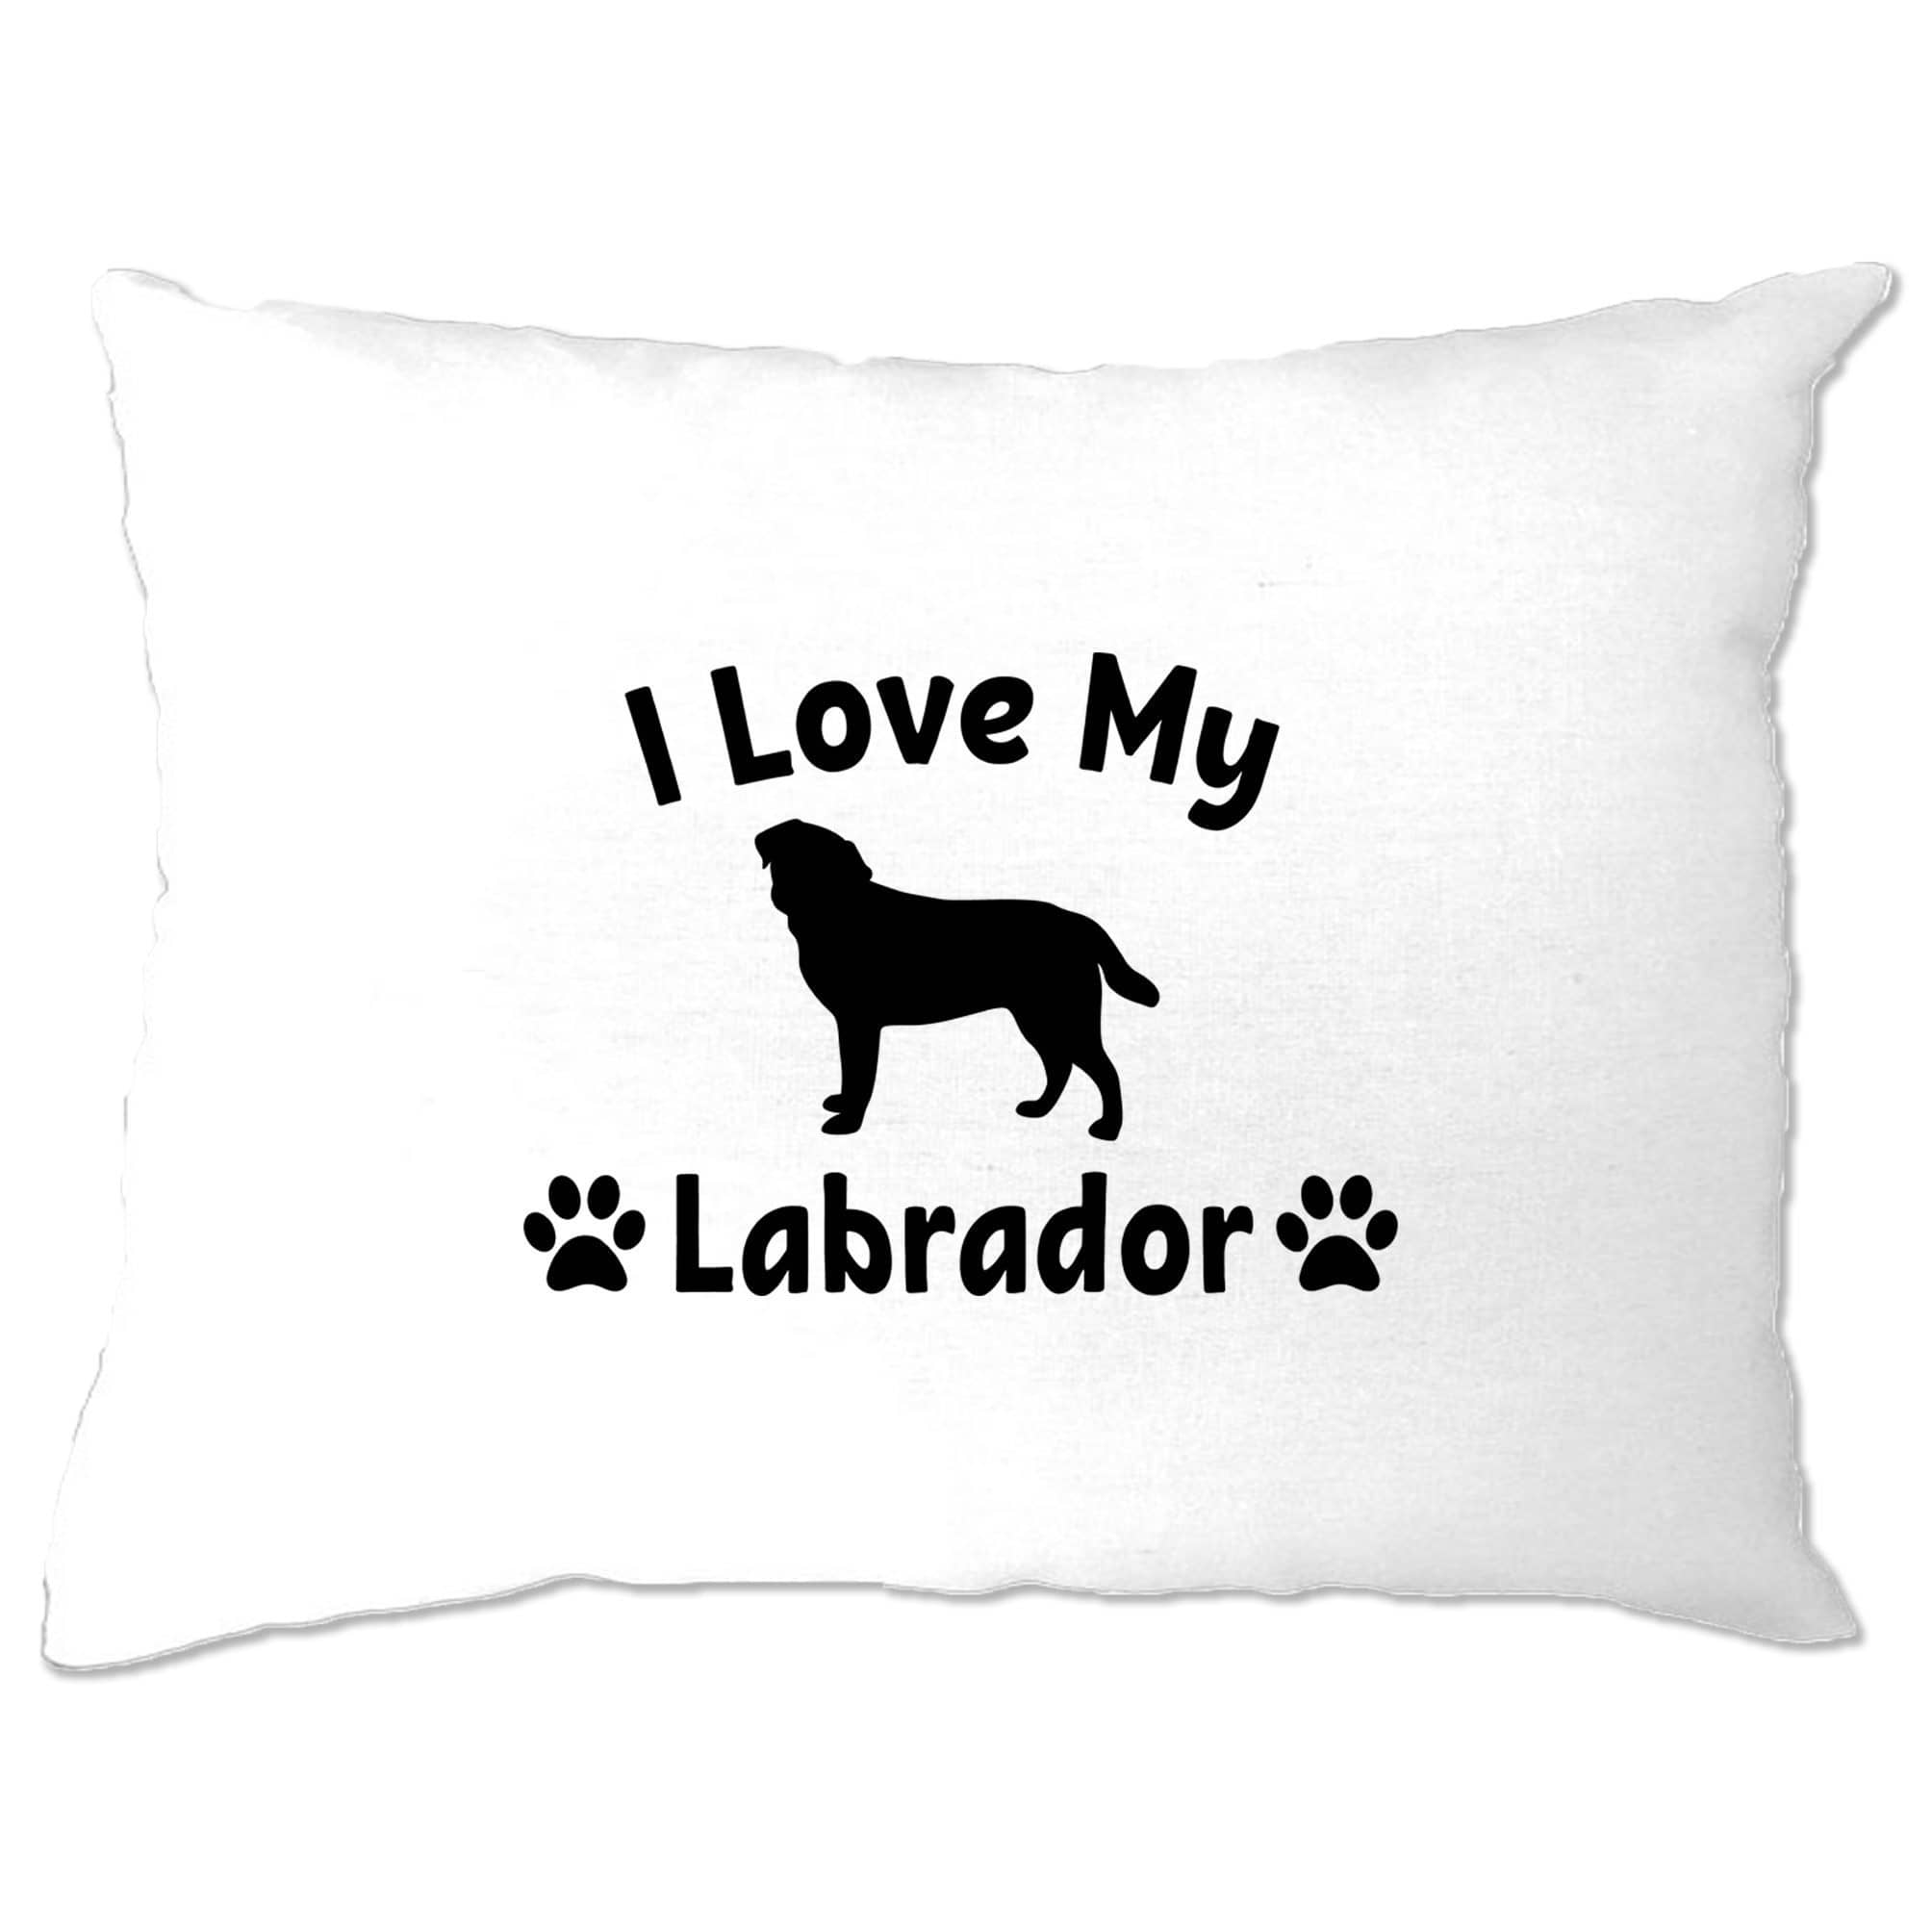 Dog Owner Pillow Case I Love My Labrador Slogan